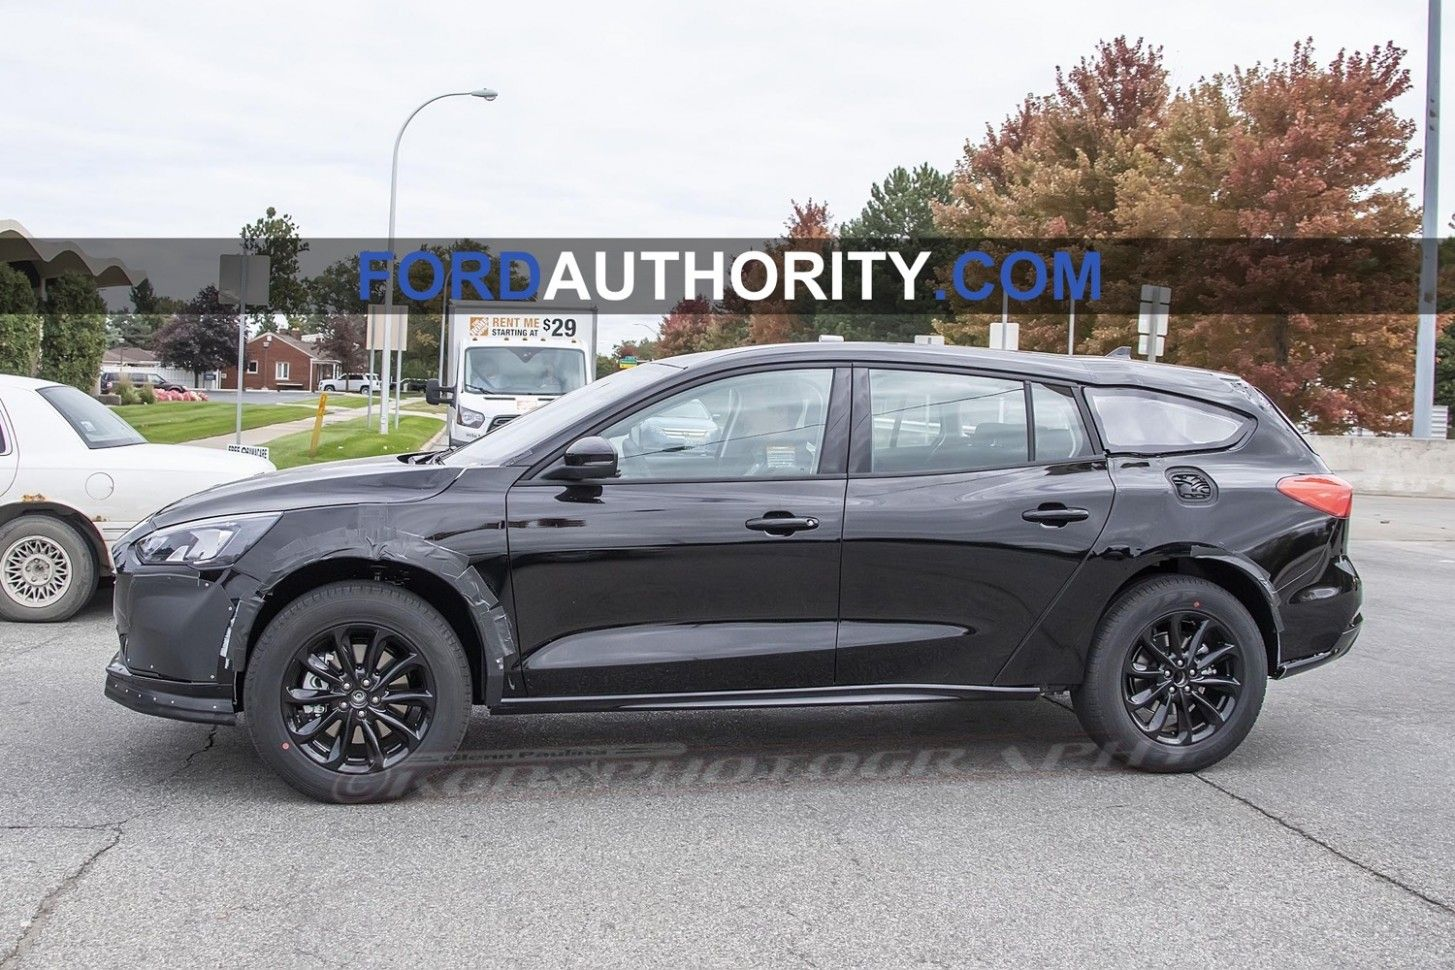 2021 The Spy Shots Ford Fusion Concept and Review